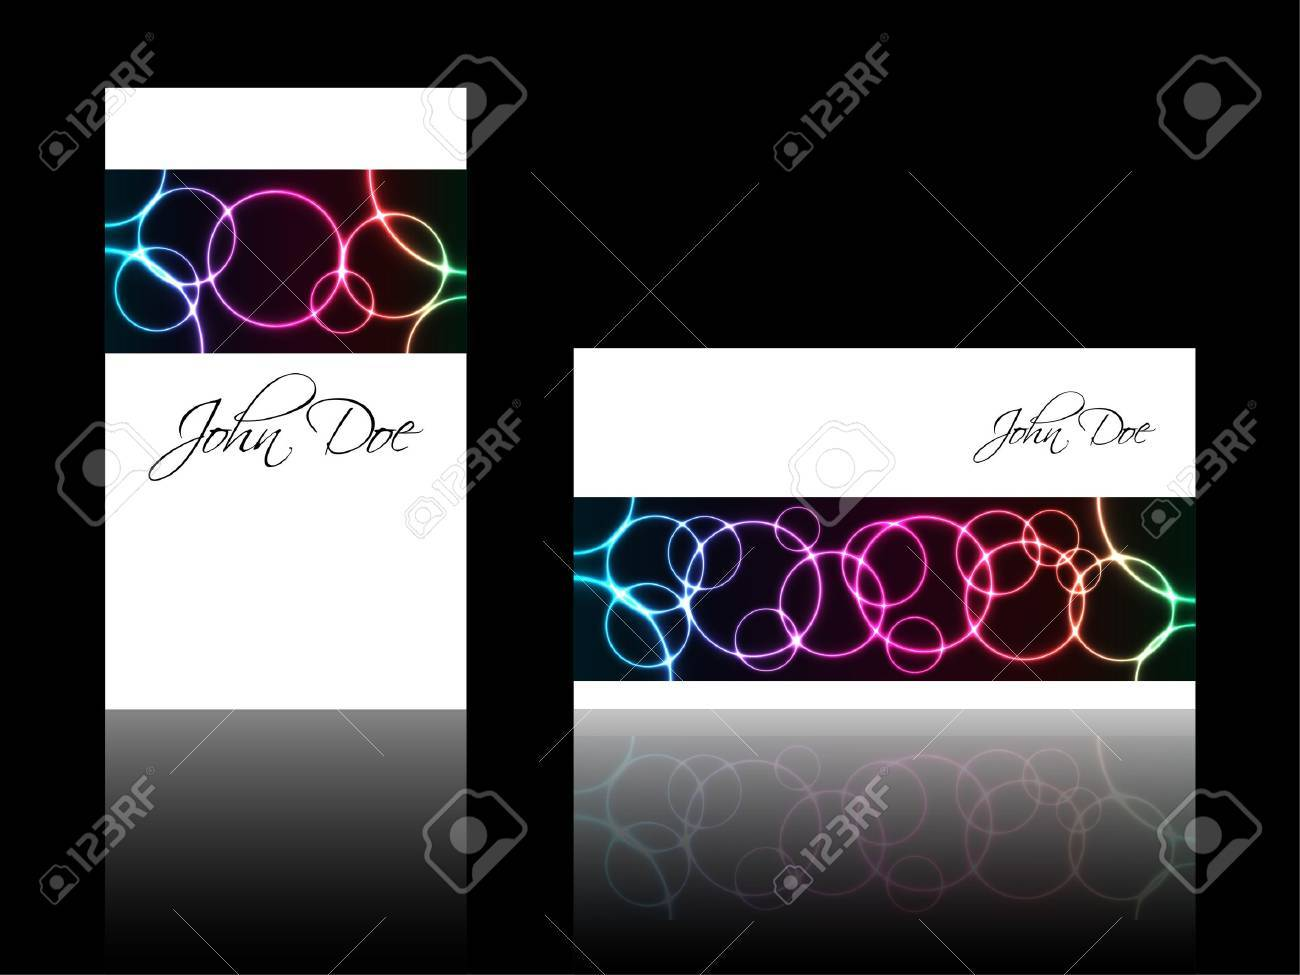 Abstract Business Card With Special Plasma Design Royalty Free ...